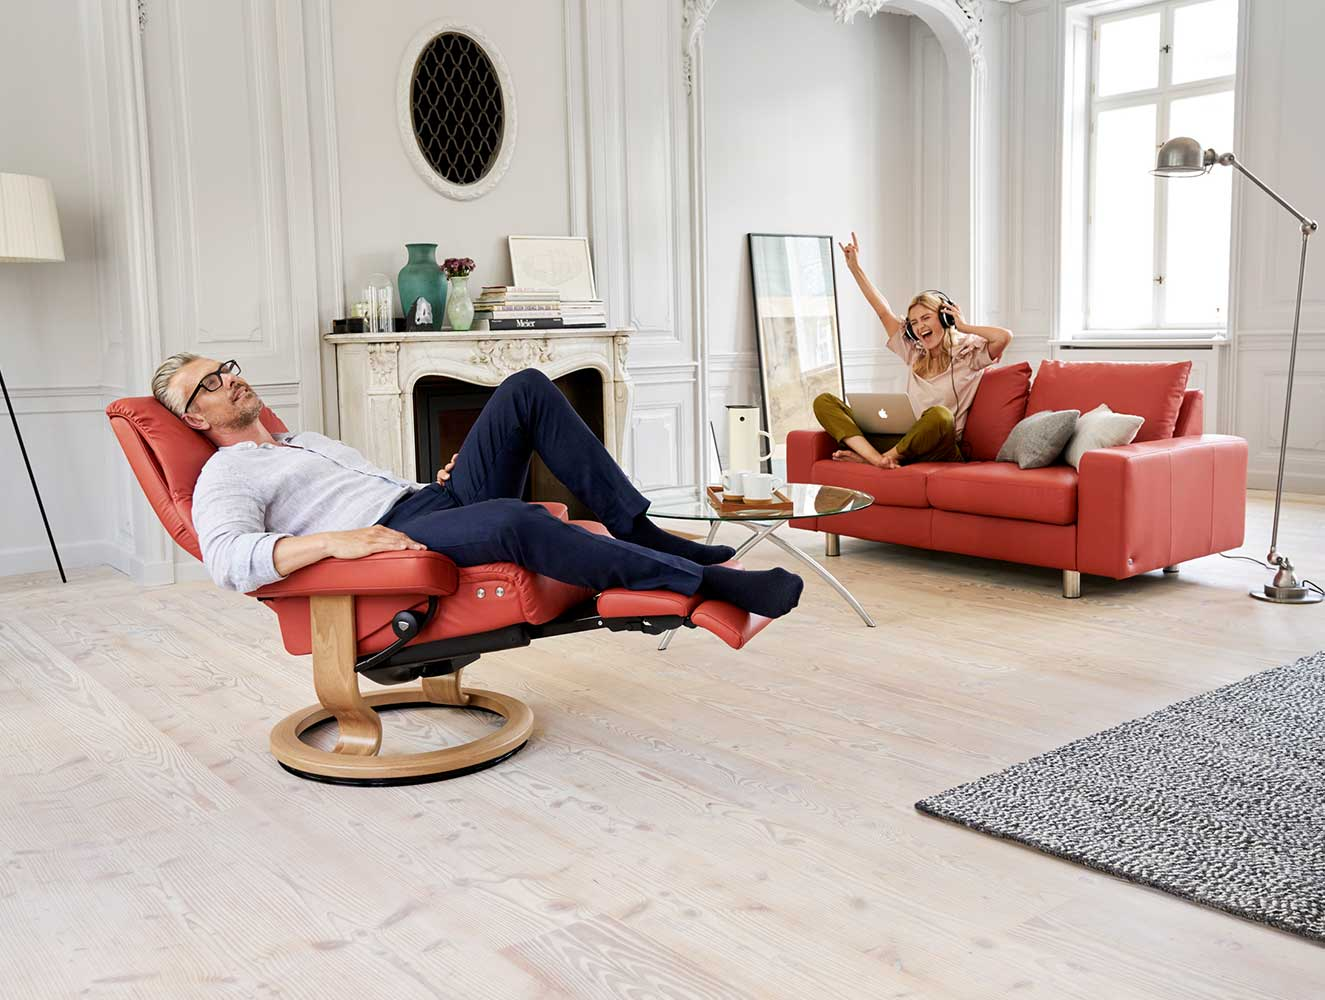 Stressless Nordic Legcomfort Upgrade To The Stressless Legcomfort For Free Or 15 Off Stressless